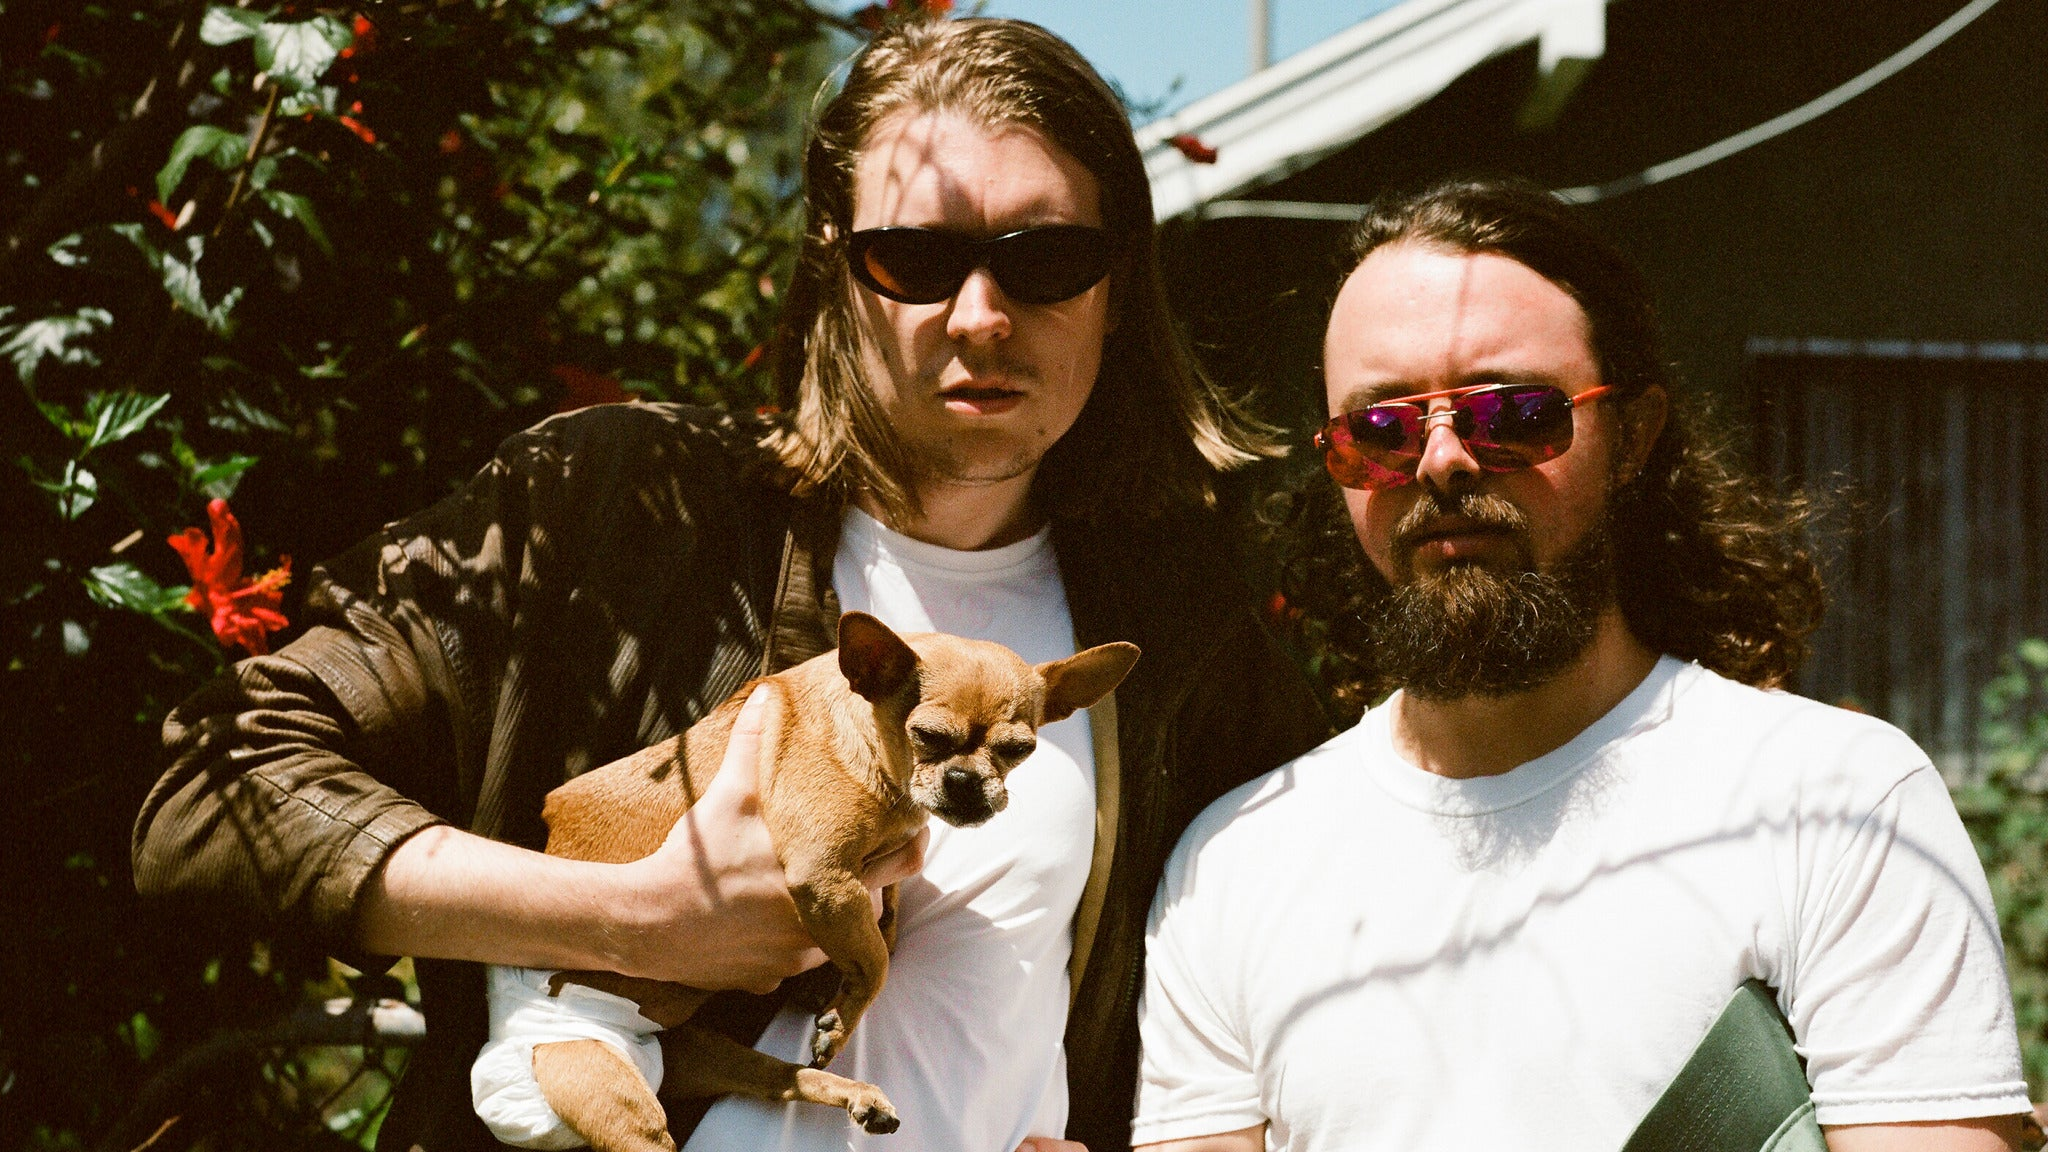 Alex Cameron at 7th Street Entry - Minneapolis, MN 55403